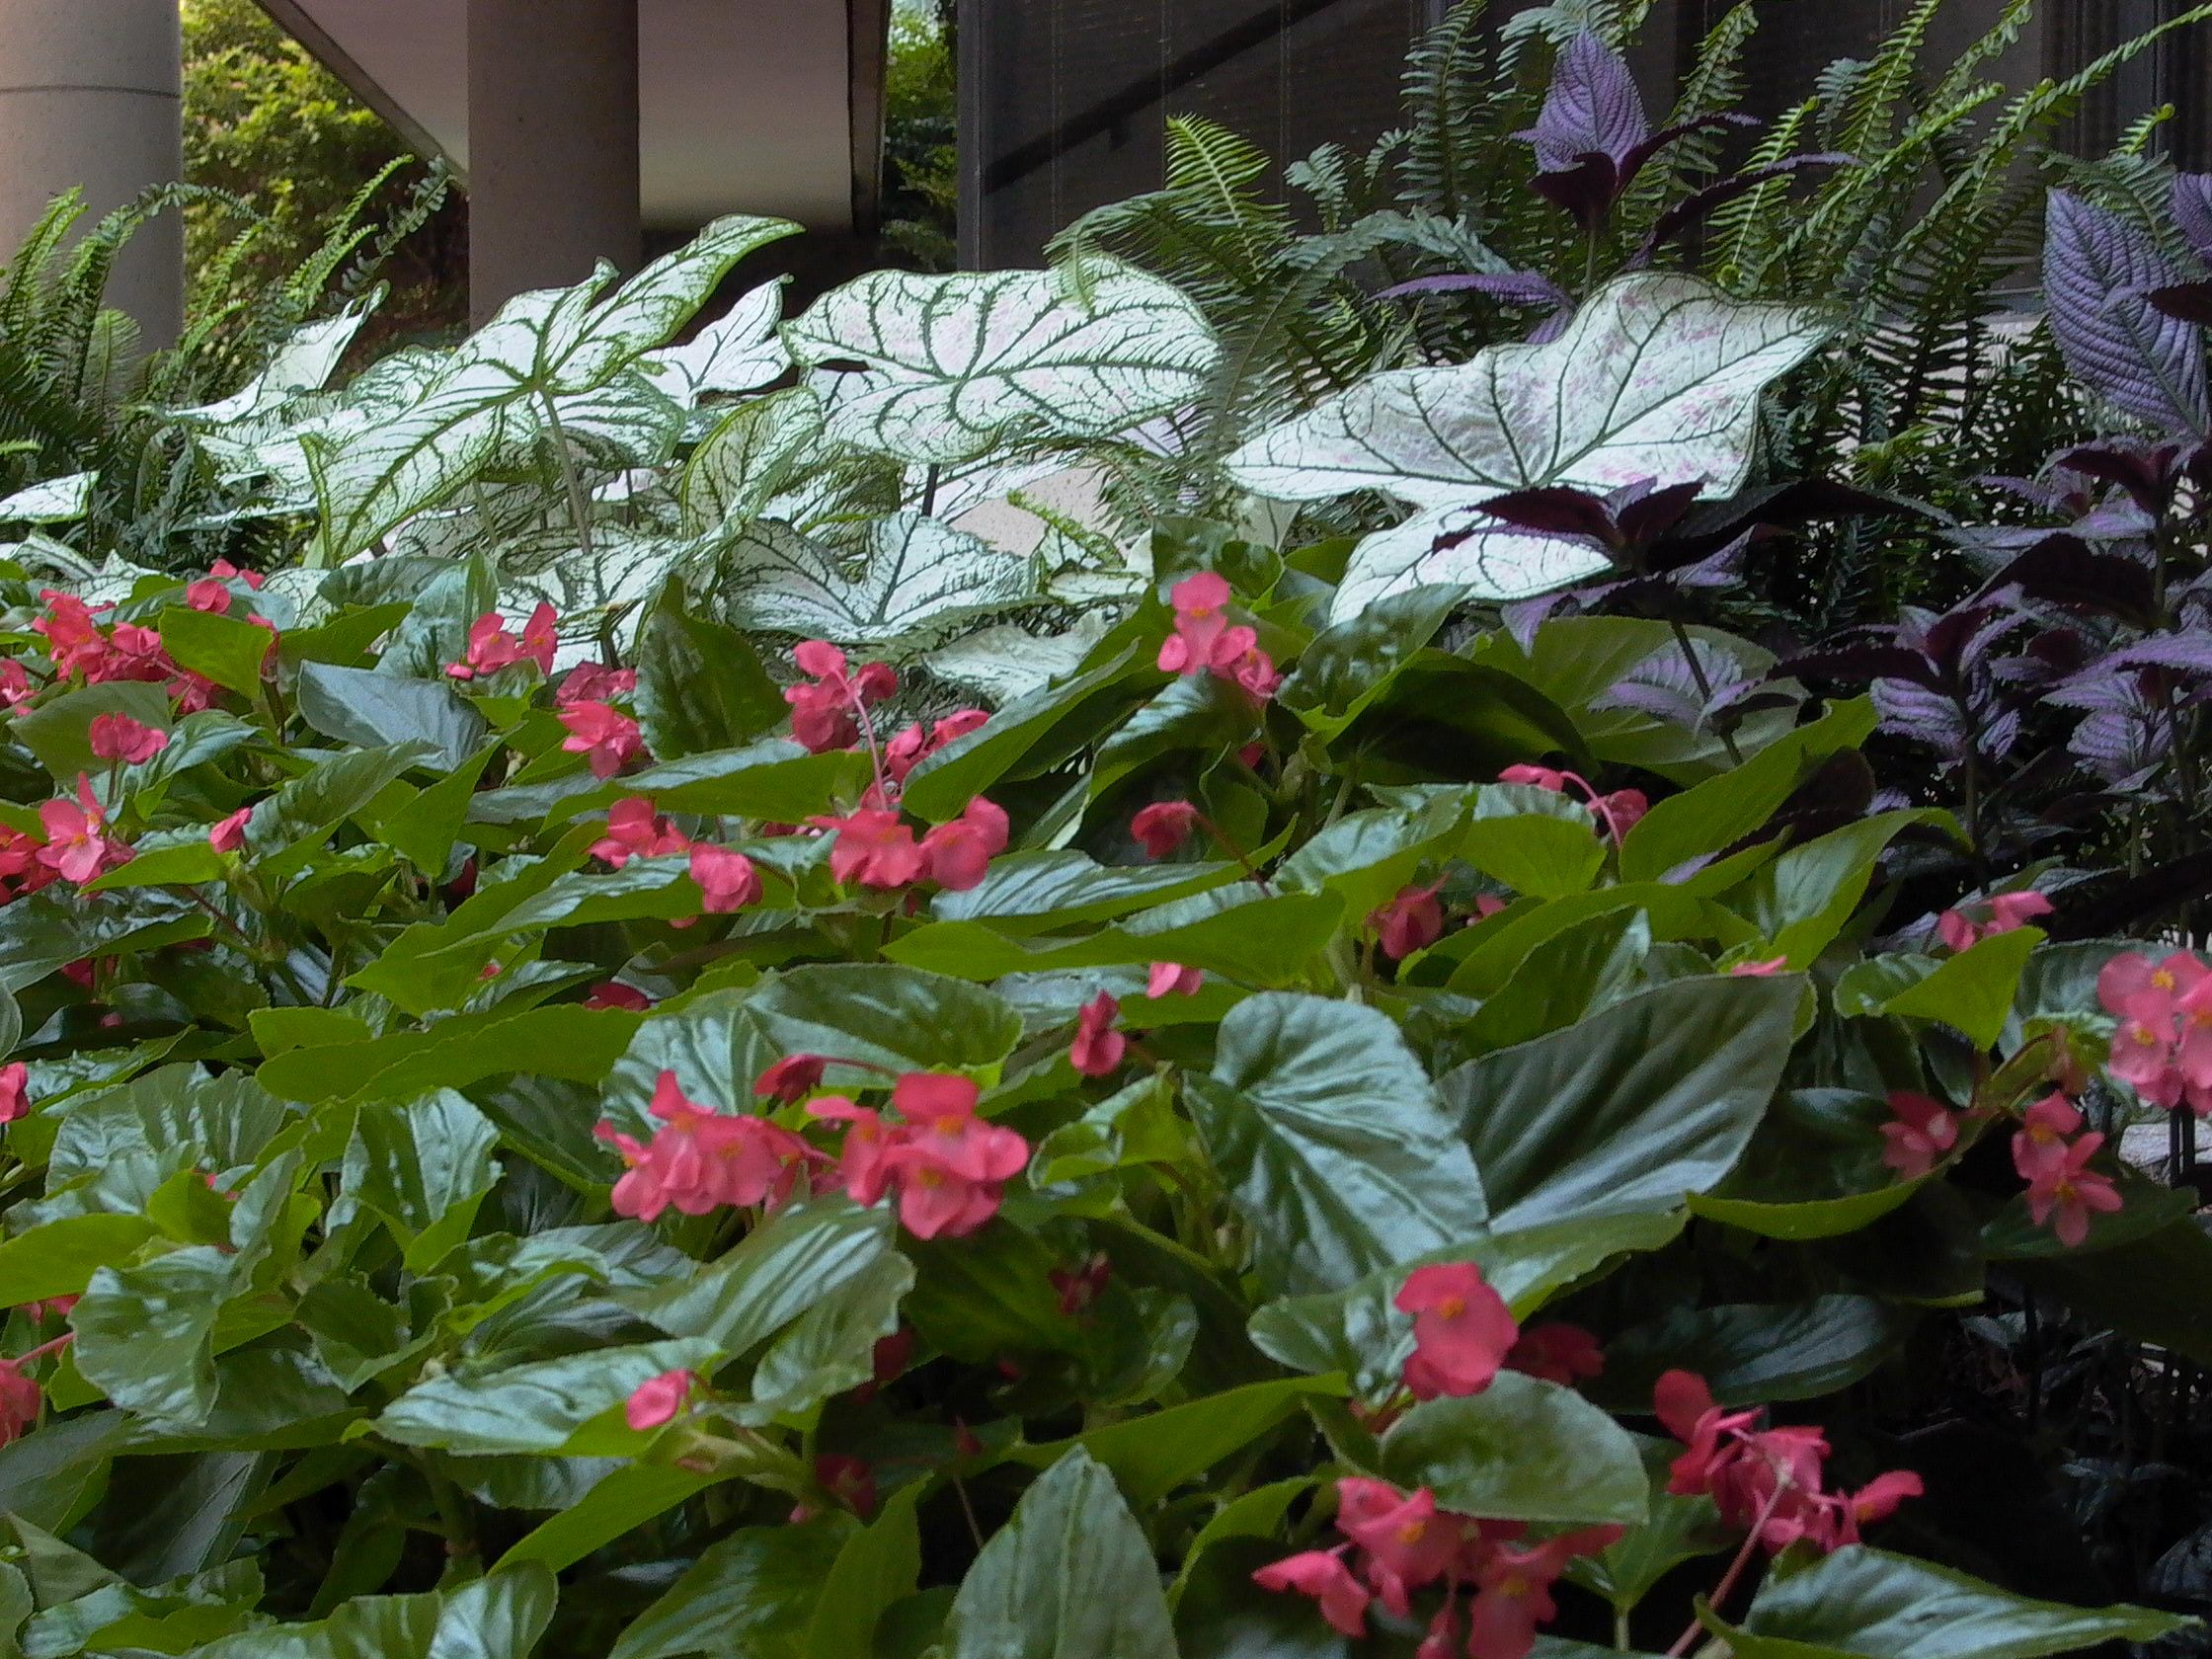 White Xmas Caladium and Dragonwing.jpg